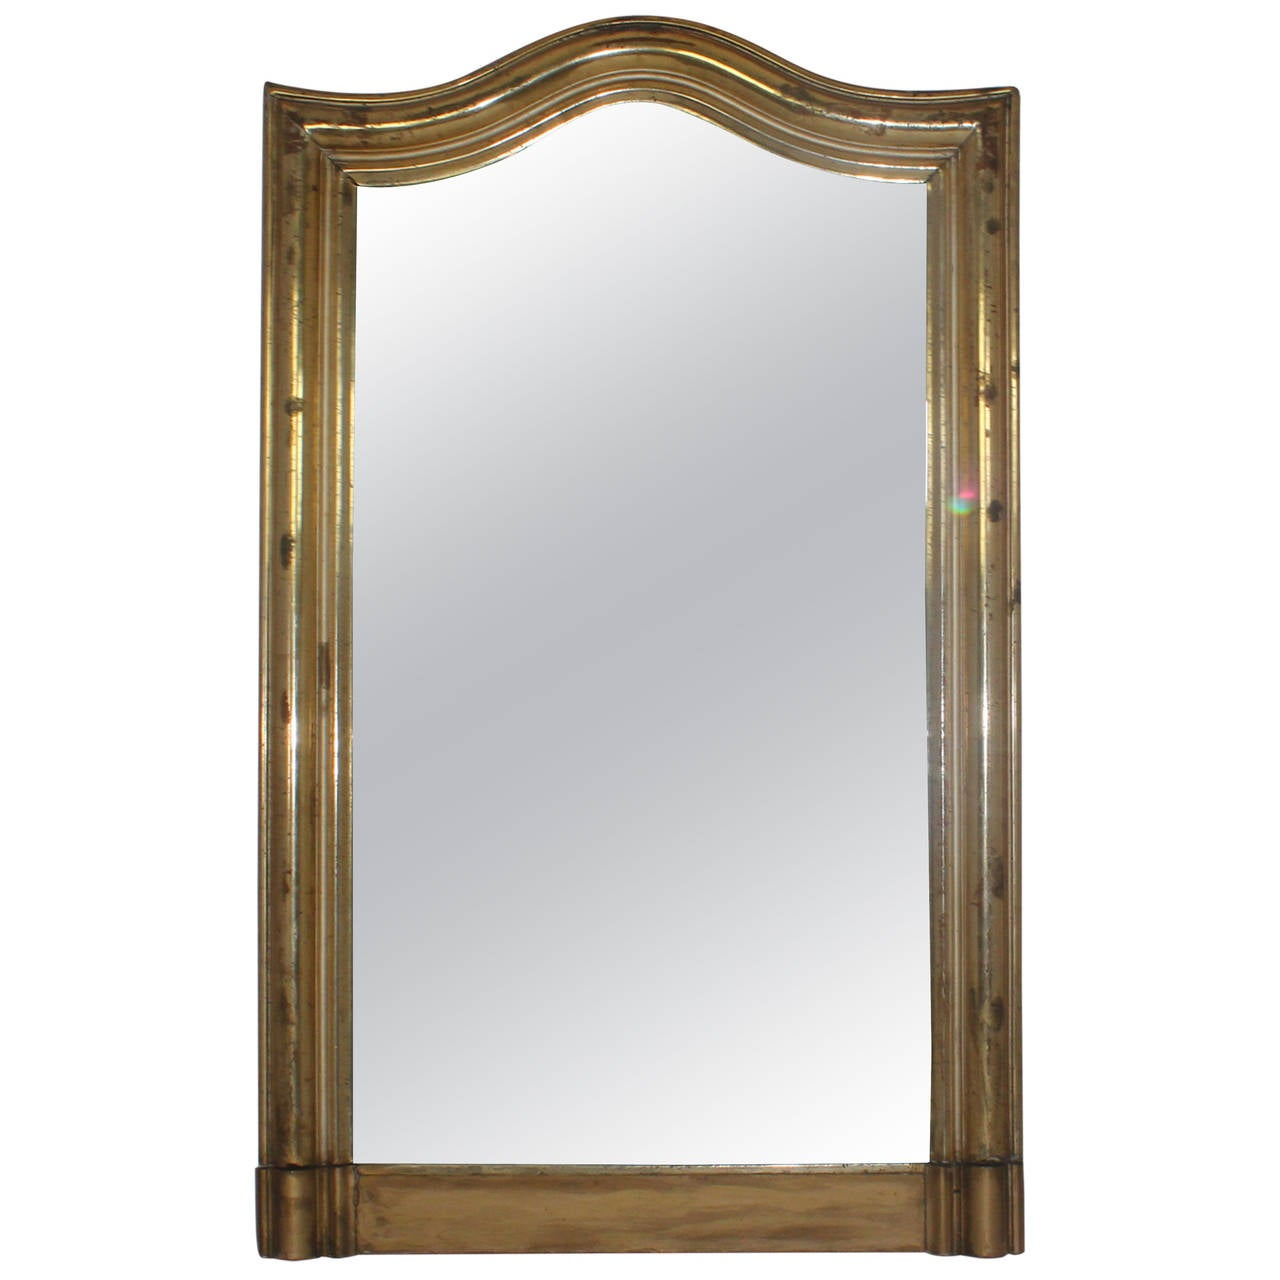 19th century french mirror at 1stdibs for French mirror